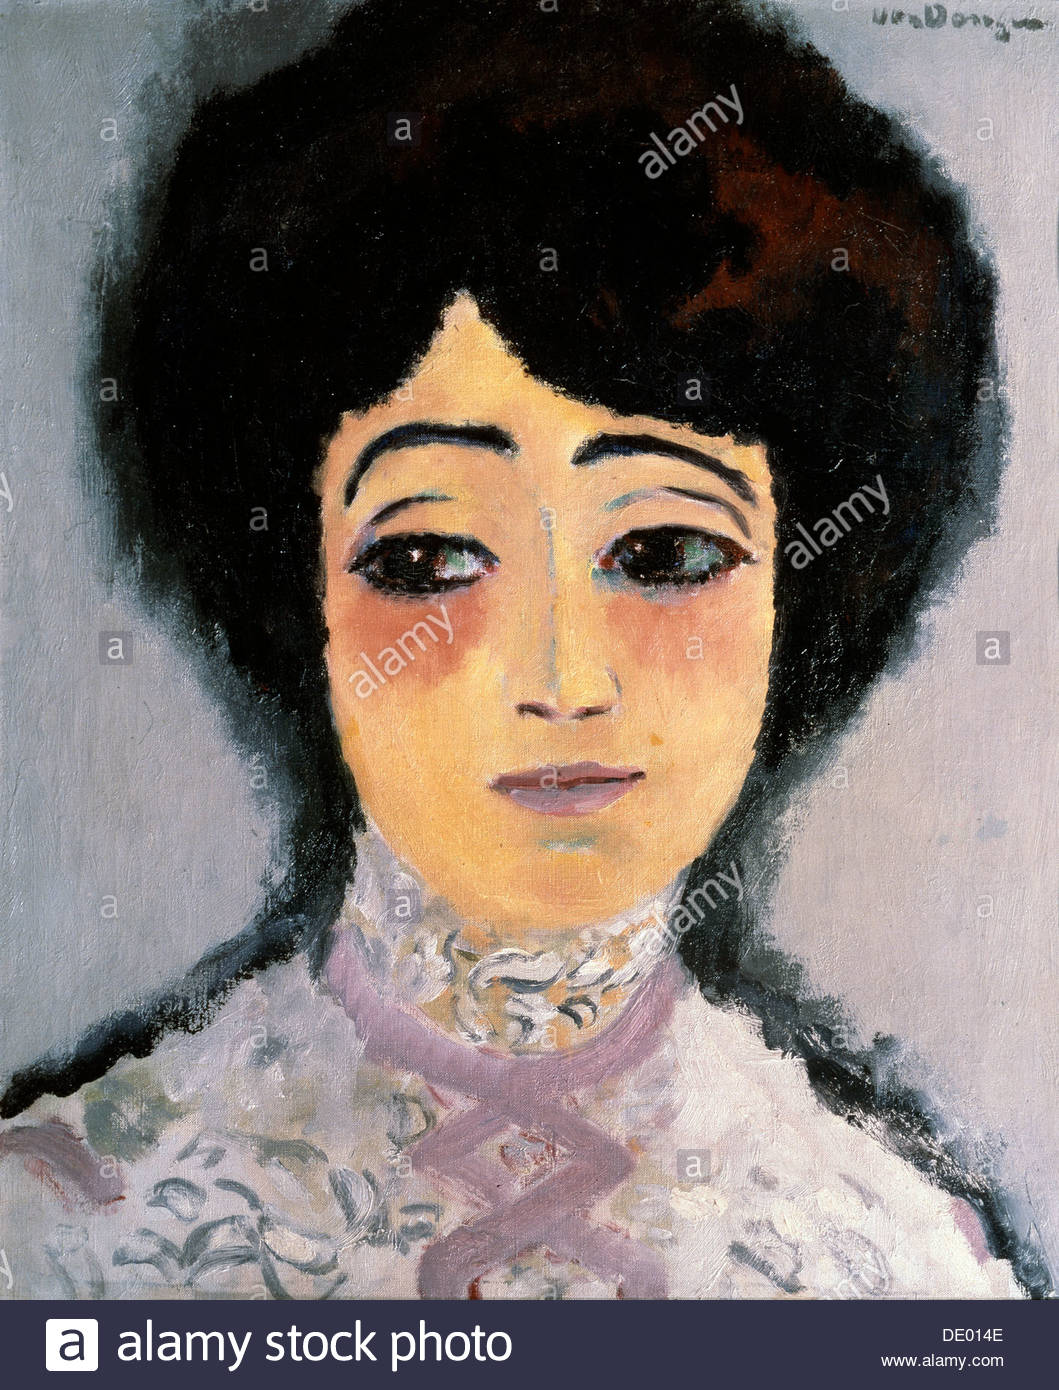 Van Dongen By Kees Van Dongen Stock Photos And By Kees Van Dongen Stock